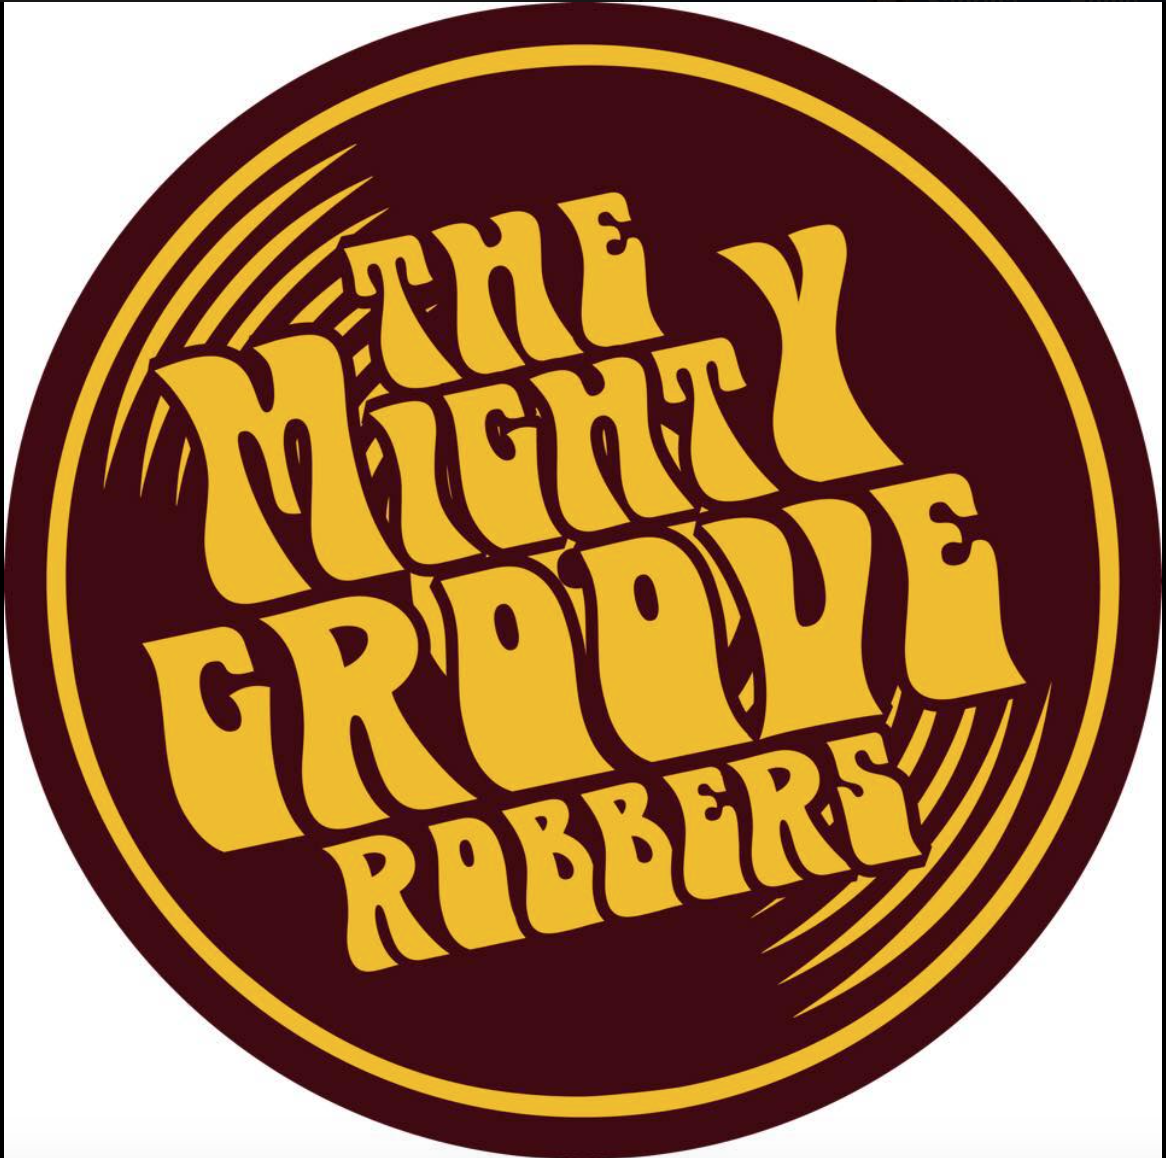 The Mighty Groove Robbers